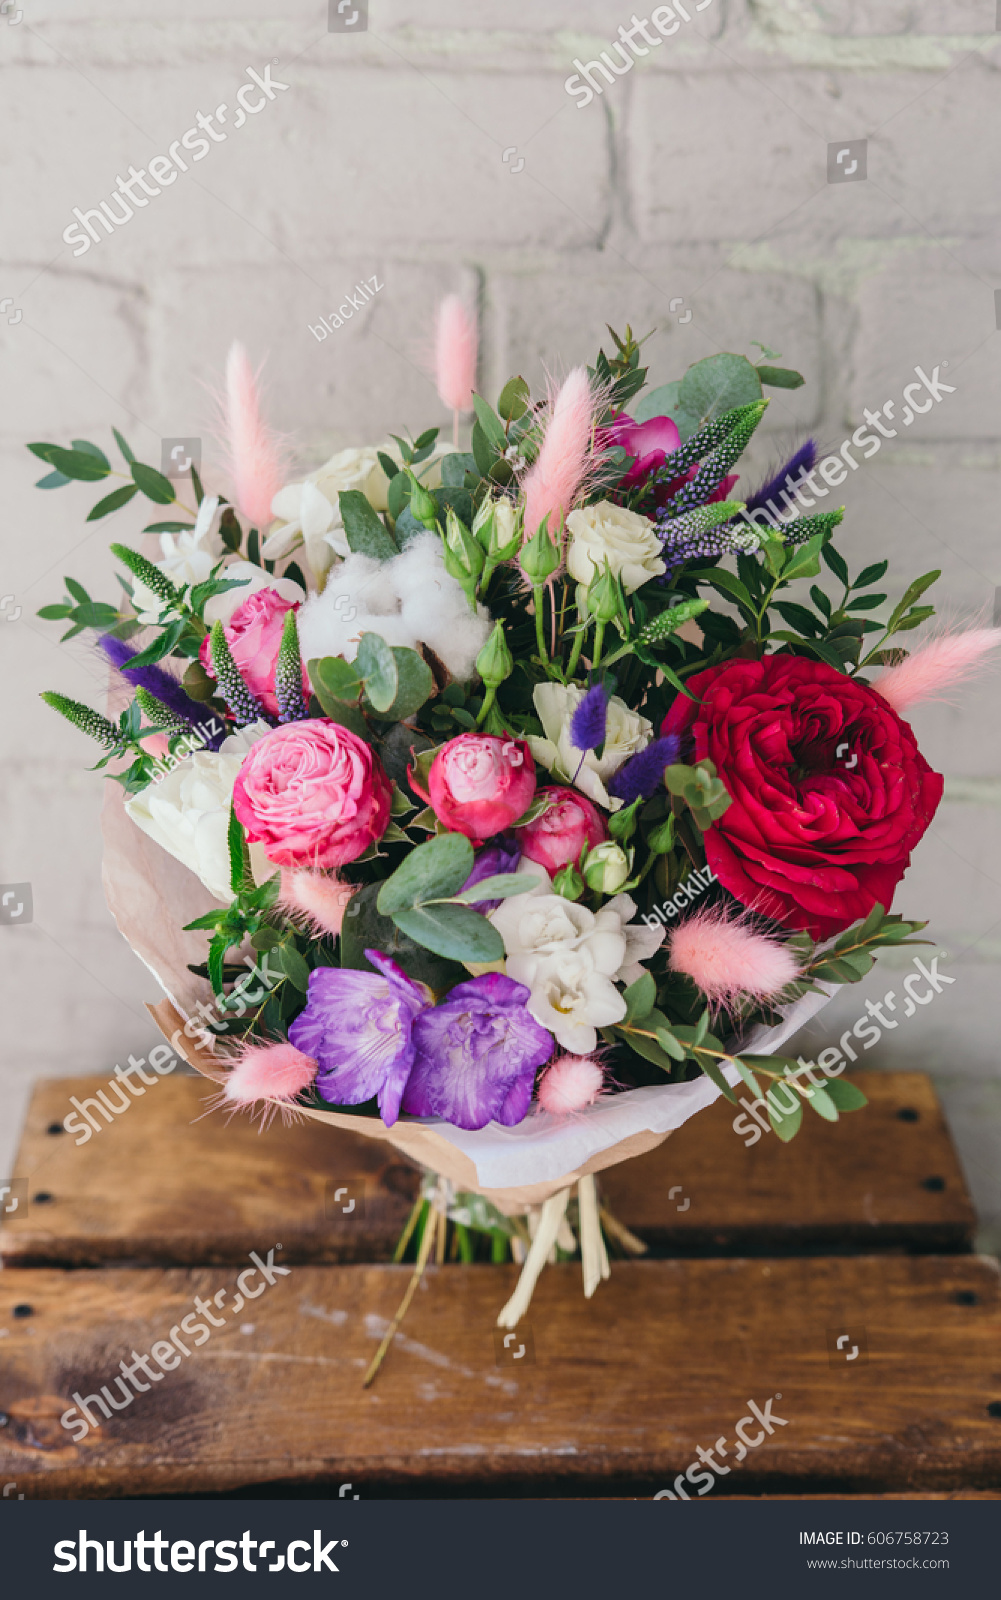 Stylish bouquet of fresh flowers composition from freesia roses id 606758723 izmirmasajfo